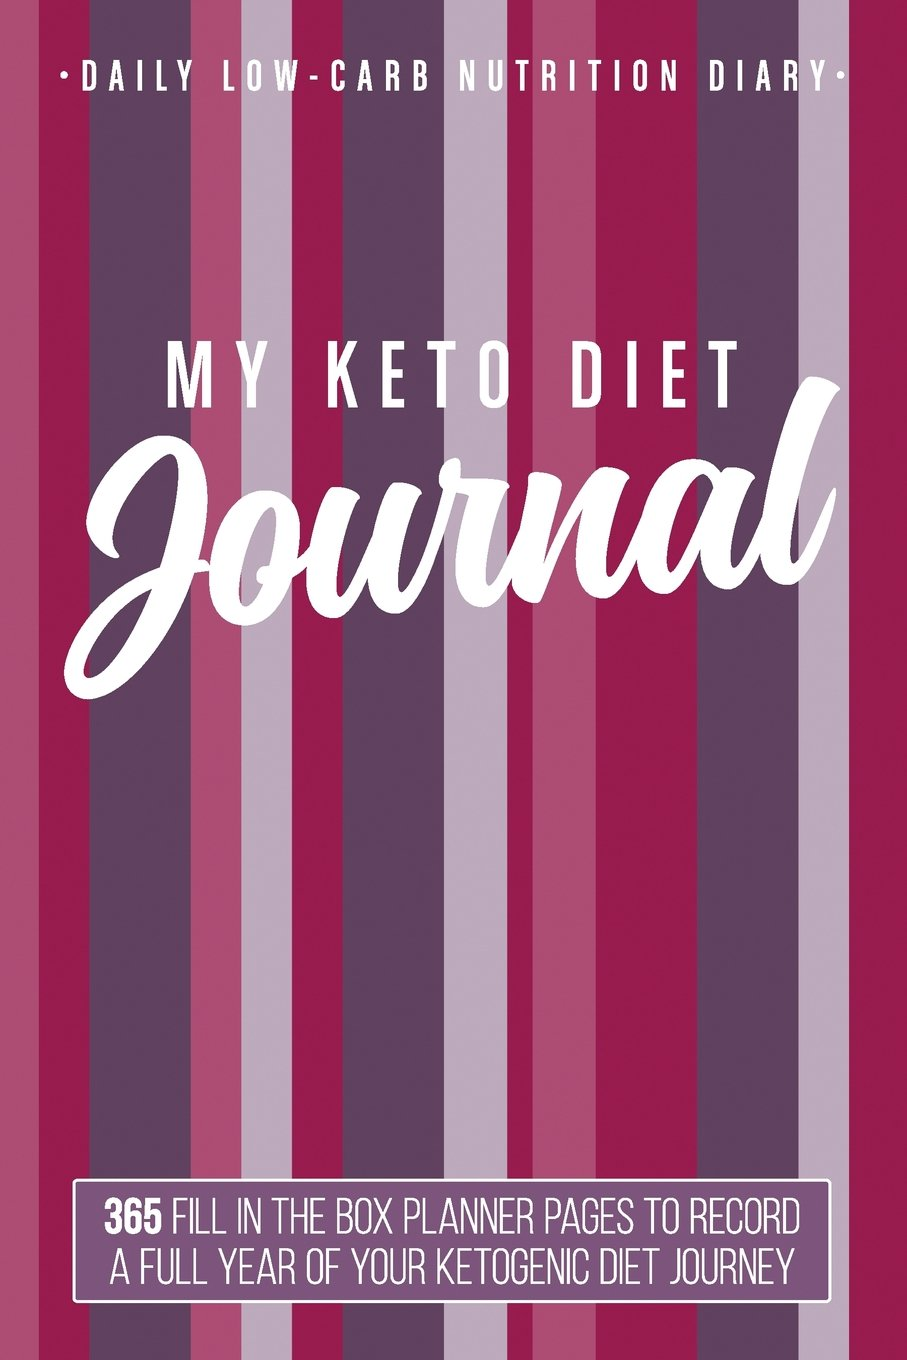 """My Keto Diet Journal: Daily Low-Carb Nutrition Diary 6"""" x 9"""": 365 Fill In The Box Planner Pages To Record A Full Year Of Your Ketogenic Diet Journey (Ketonius Books) PDF"""